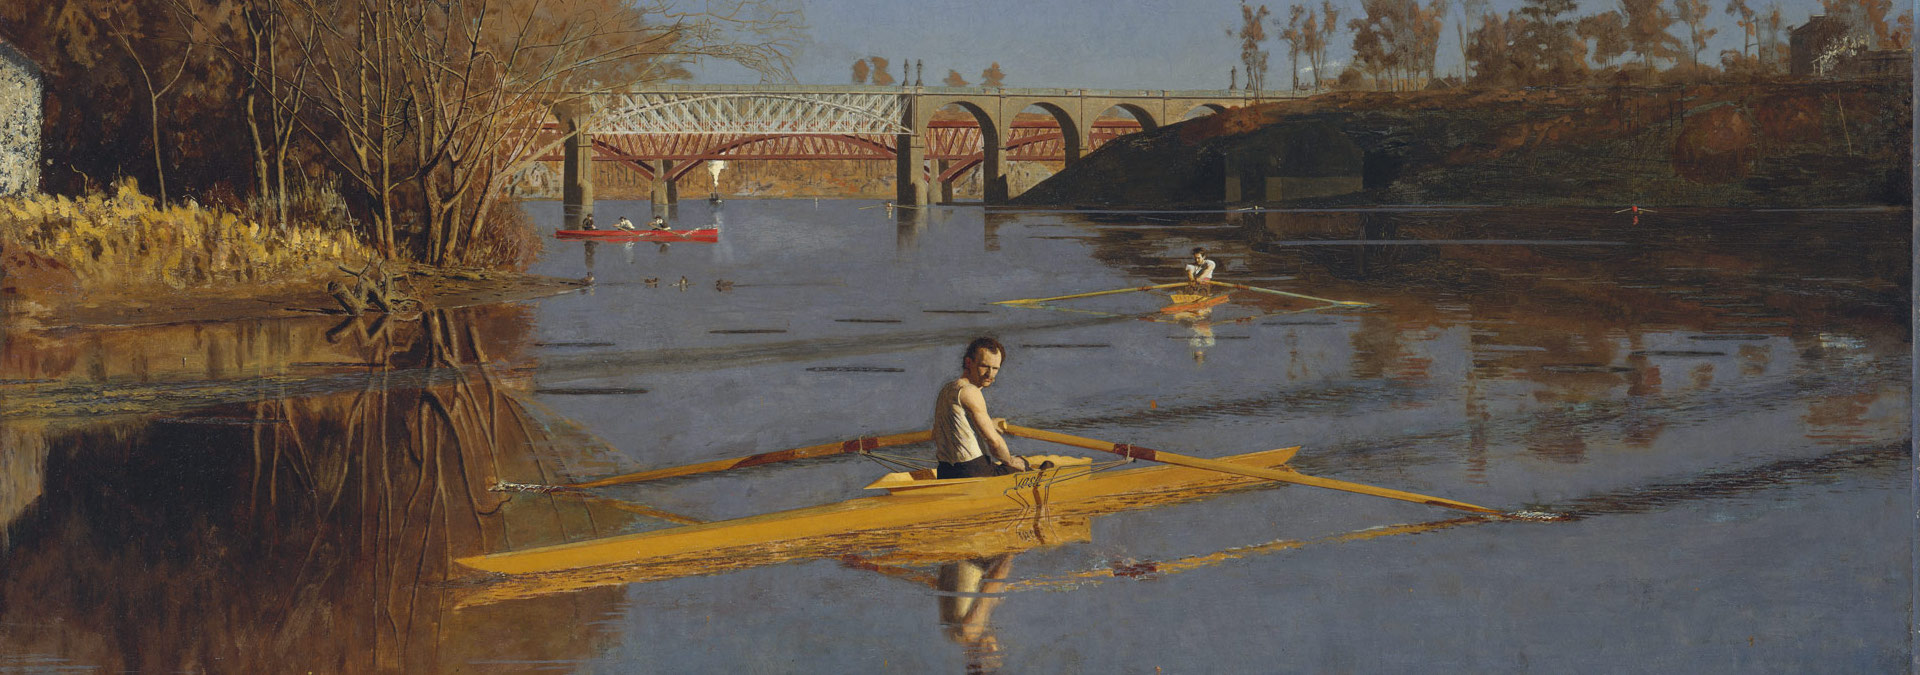 The Champion Single Sculls painting